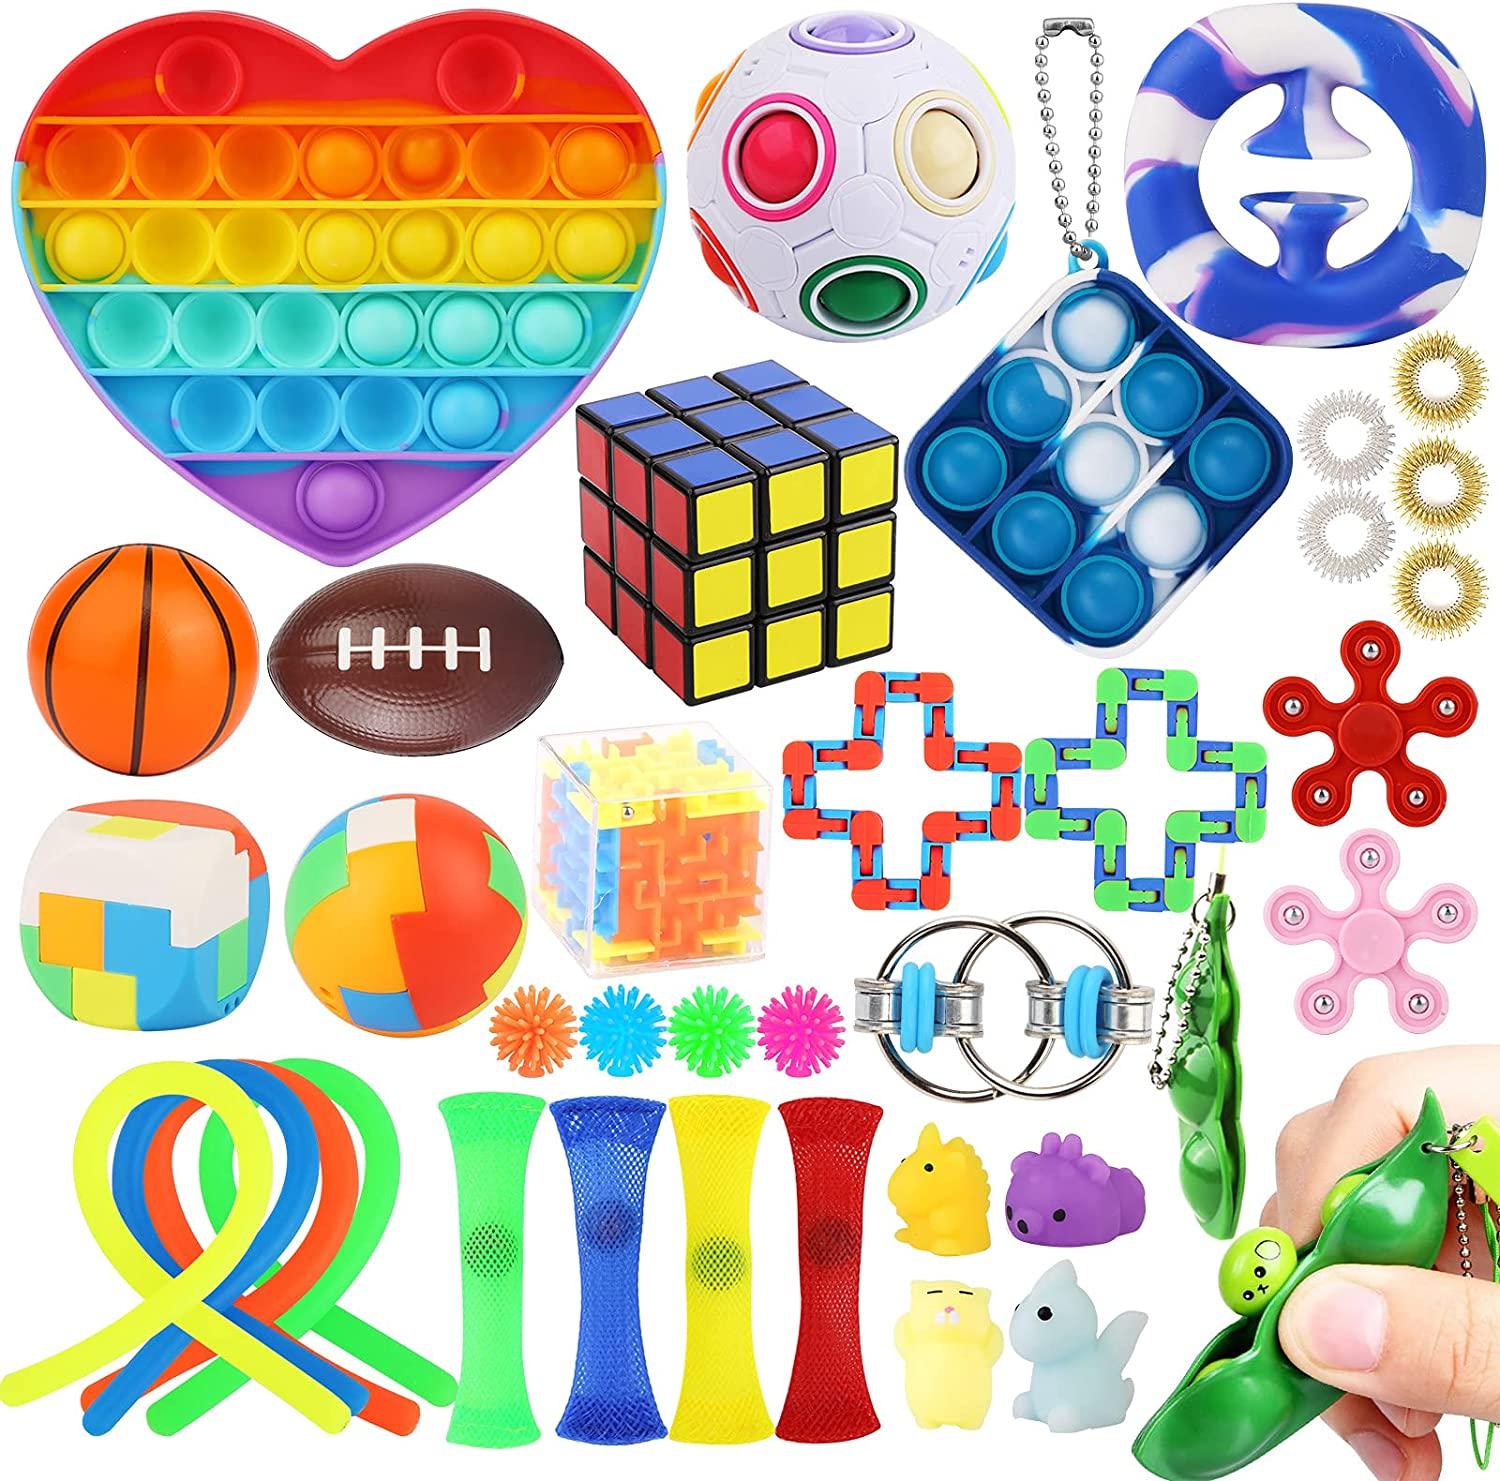 Year-end annual account 67% OFF of fixed price 37 Pcs Sensory Fidget Toys for Toy Adults&K Box Set